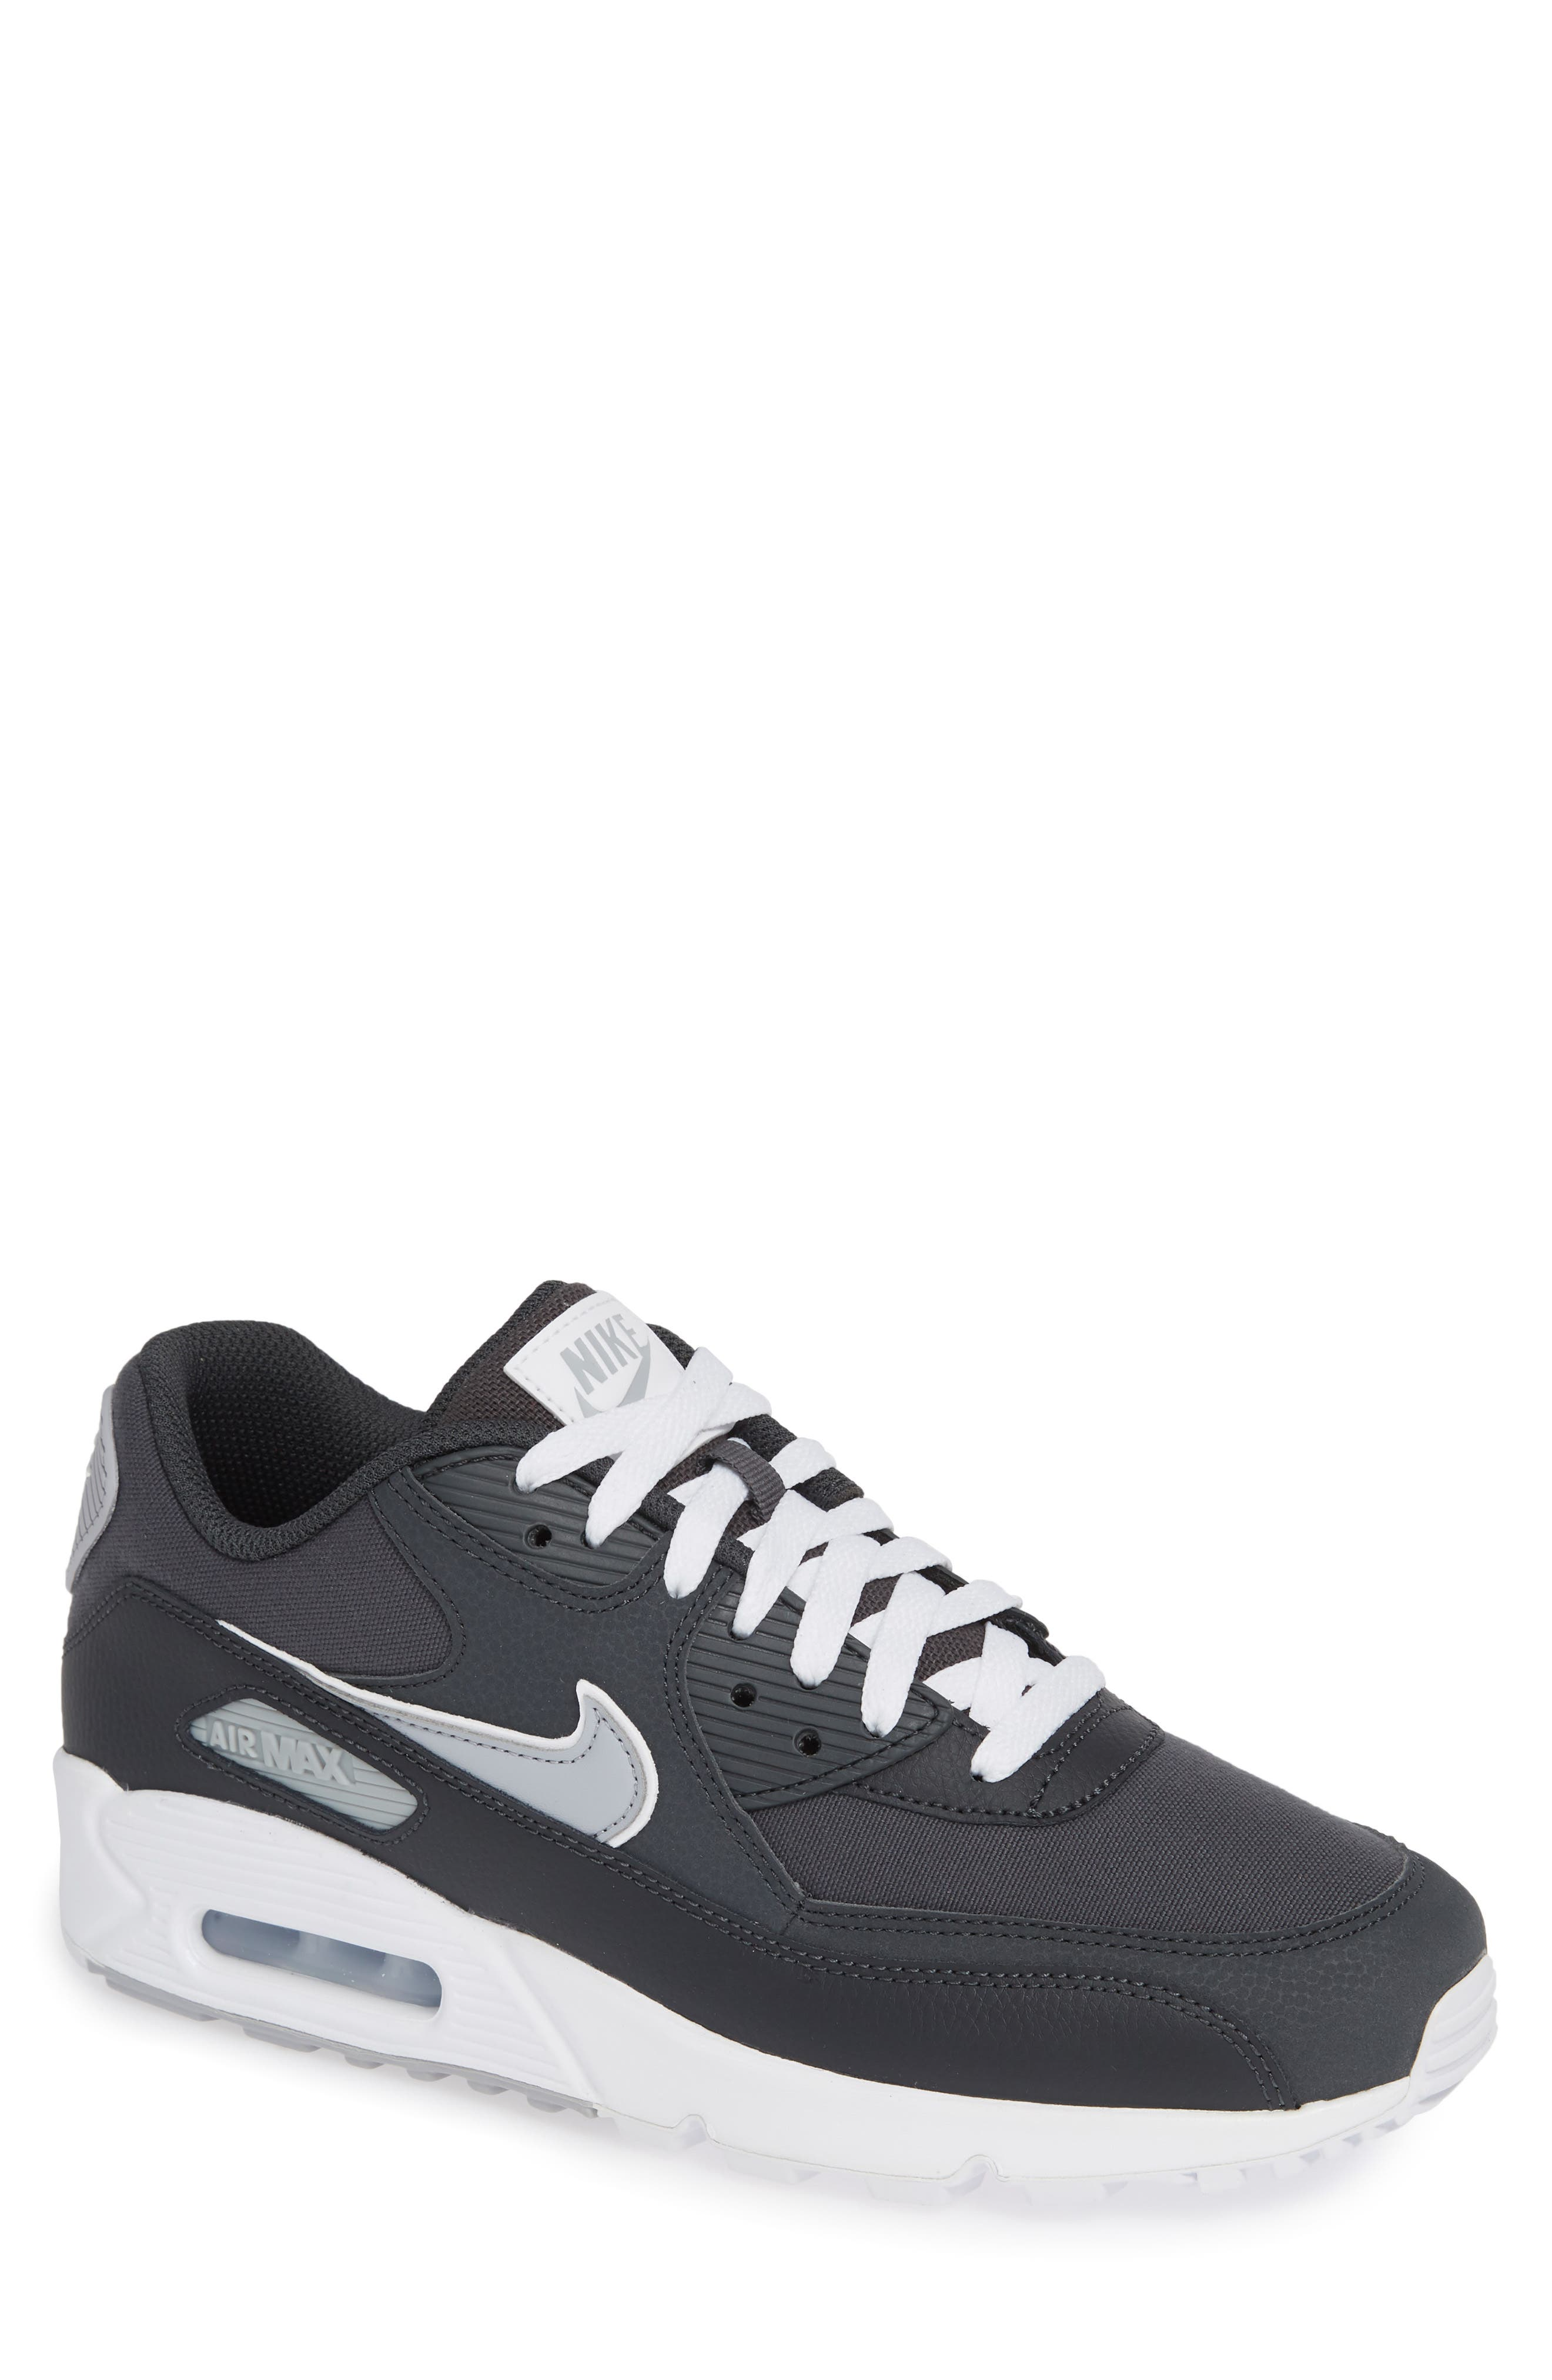 Air Max 90 Essential Sneaker,                         Main,                         color, ANTHRACITE/ WOLF GREY/ WHITE